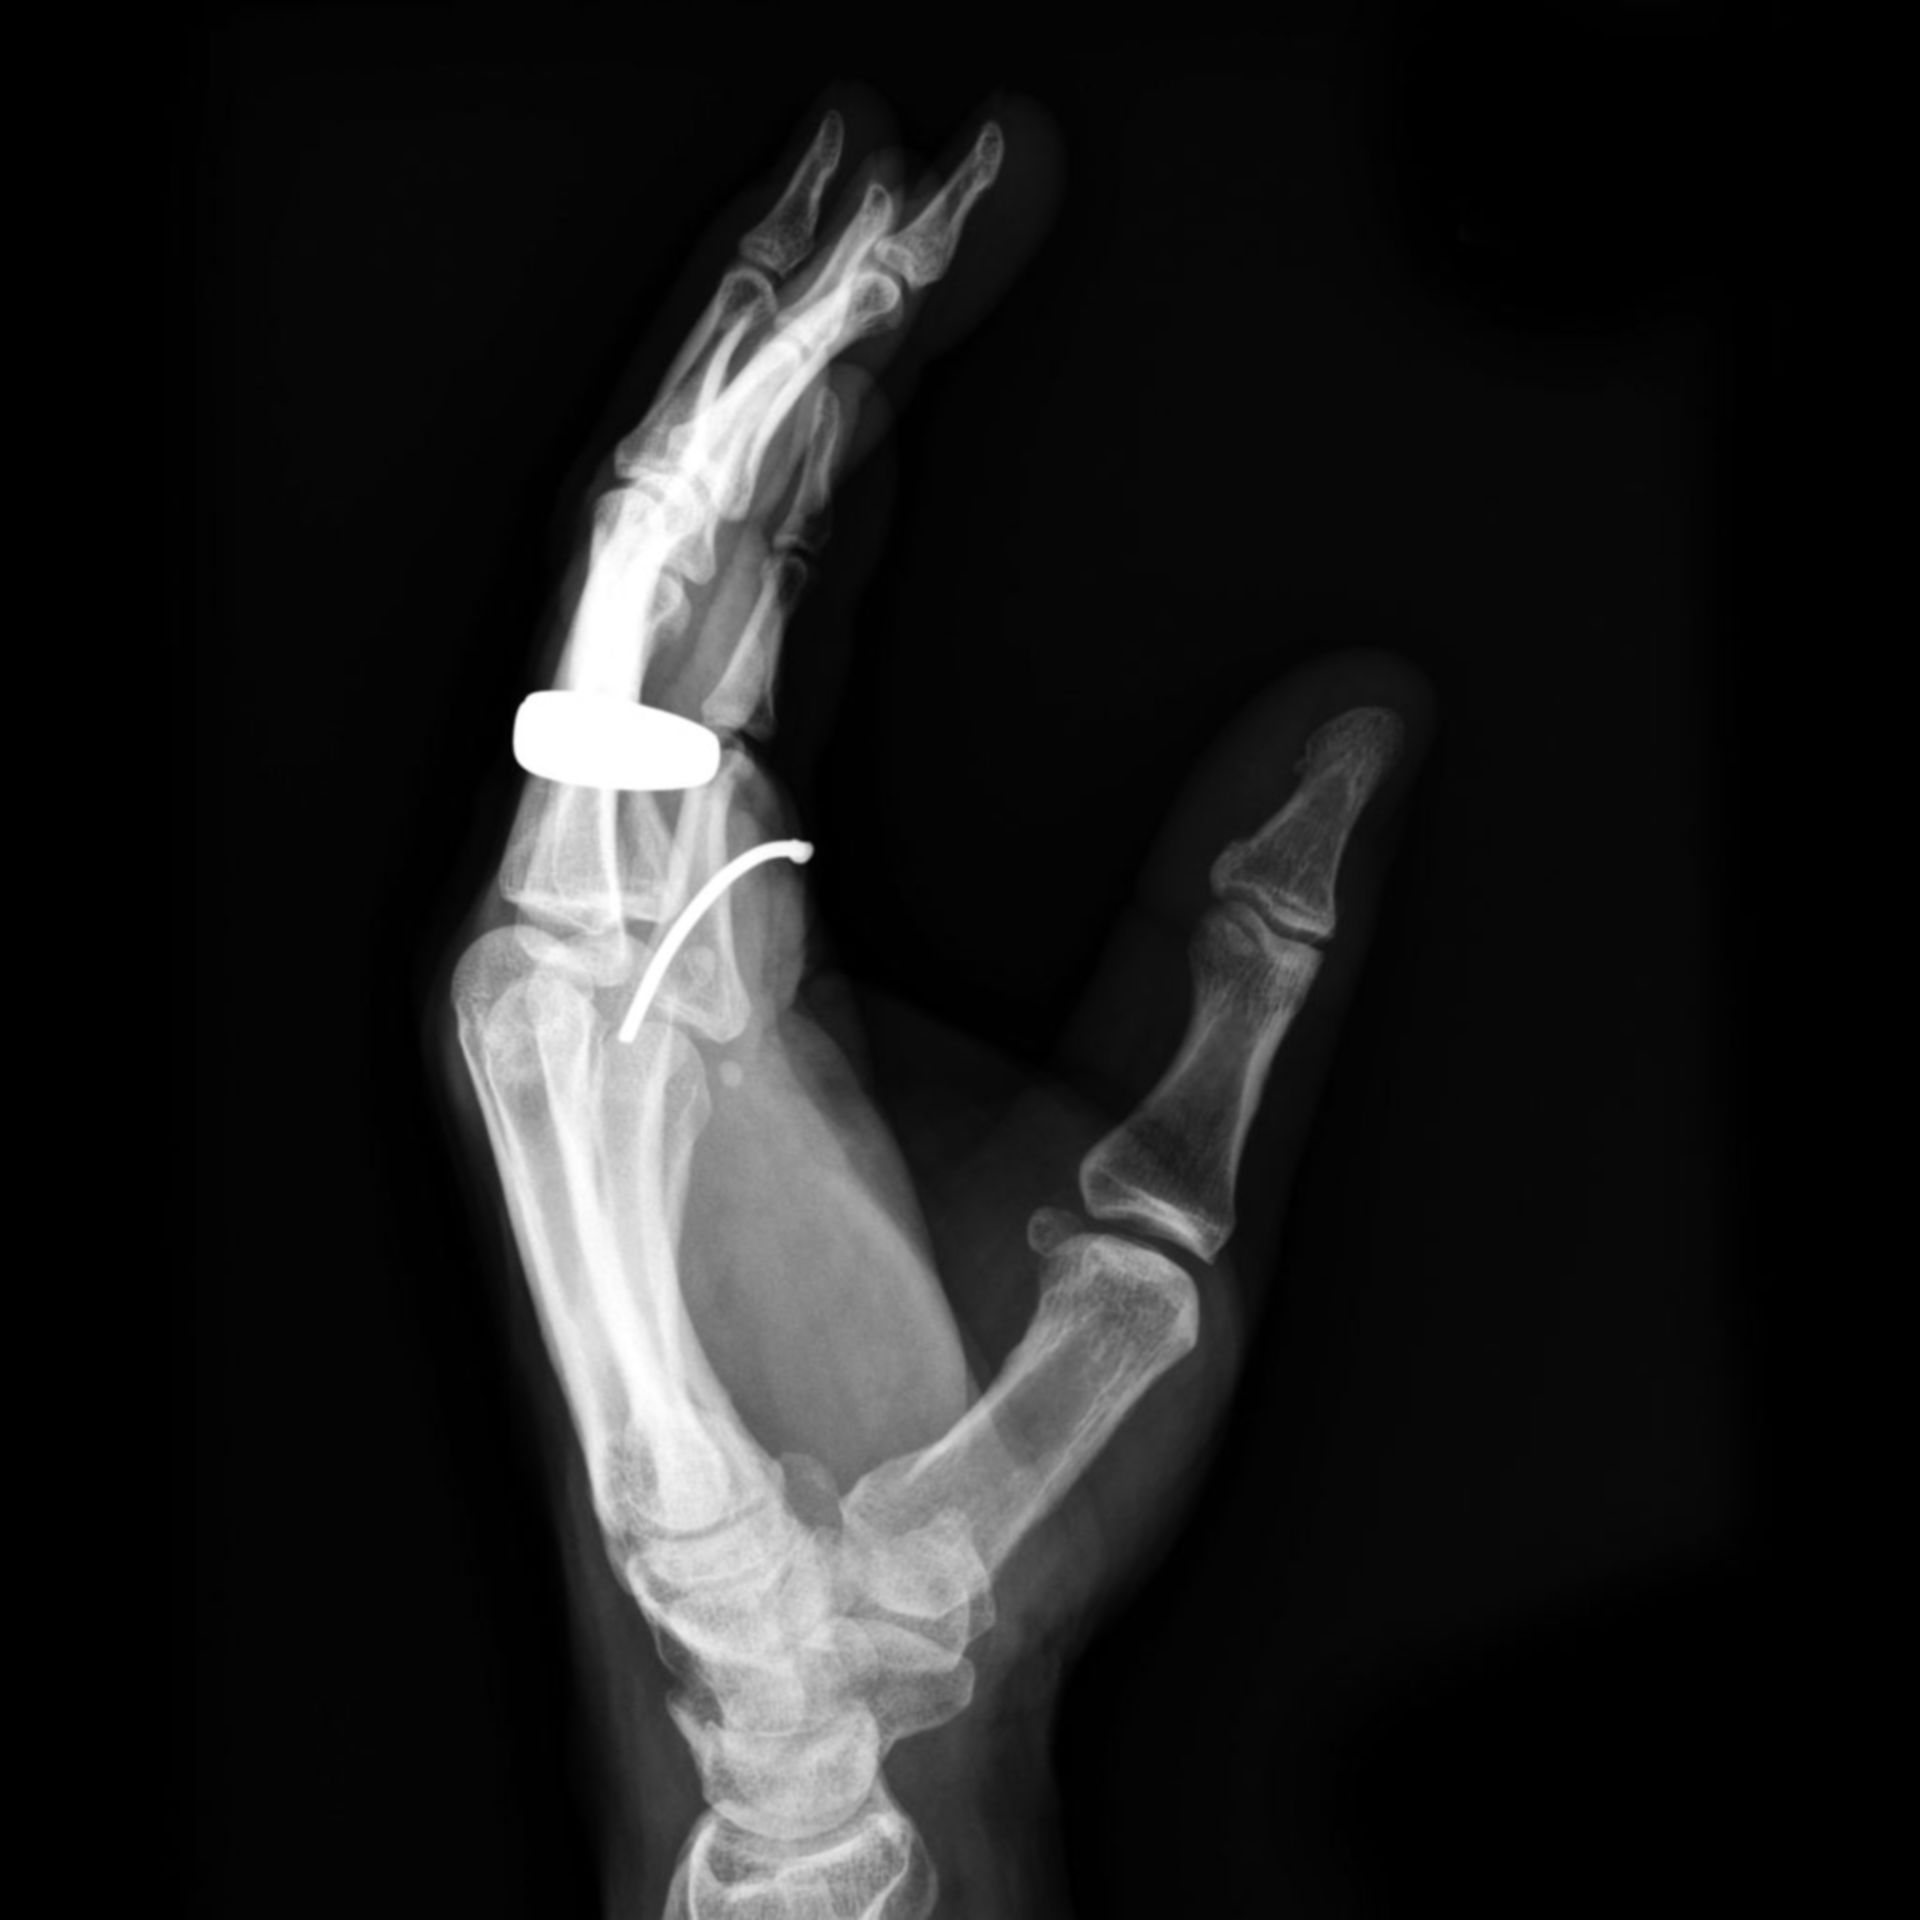 Nail in hand, X- ray